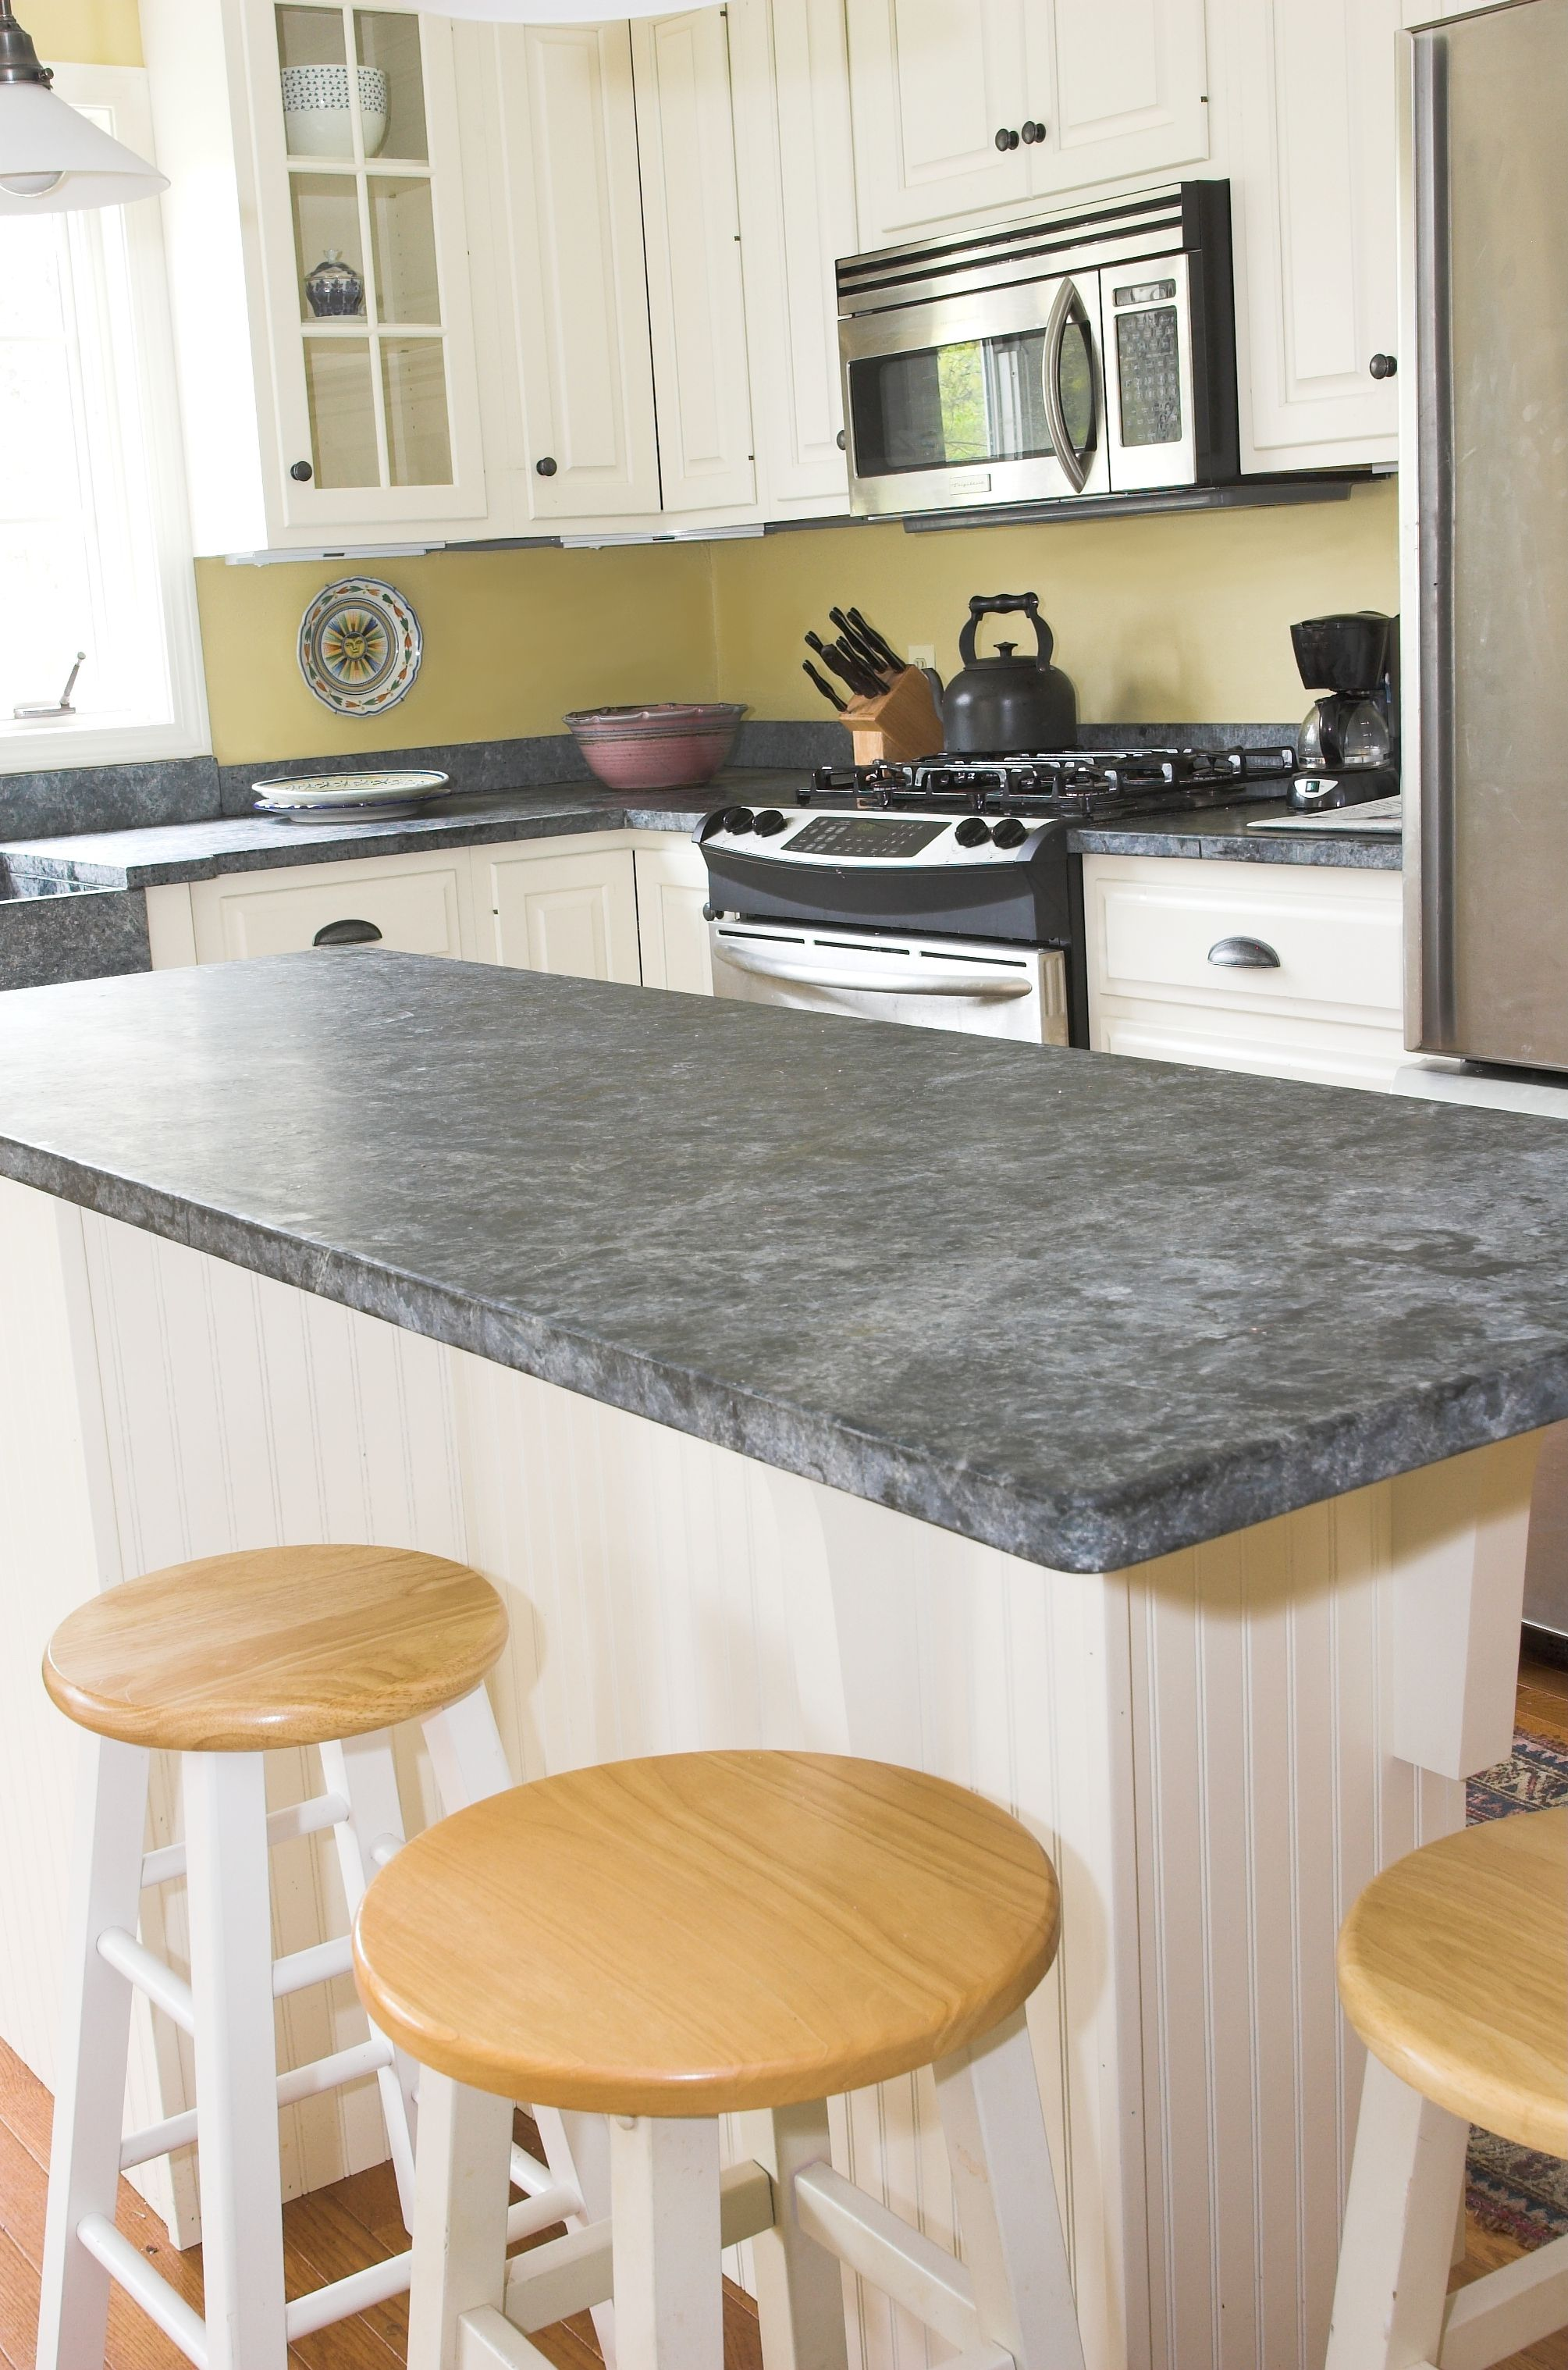 How To Clean Slate Countertops Cleaning And Caring For Slate Countertops